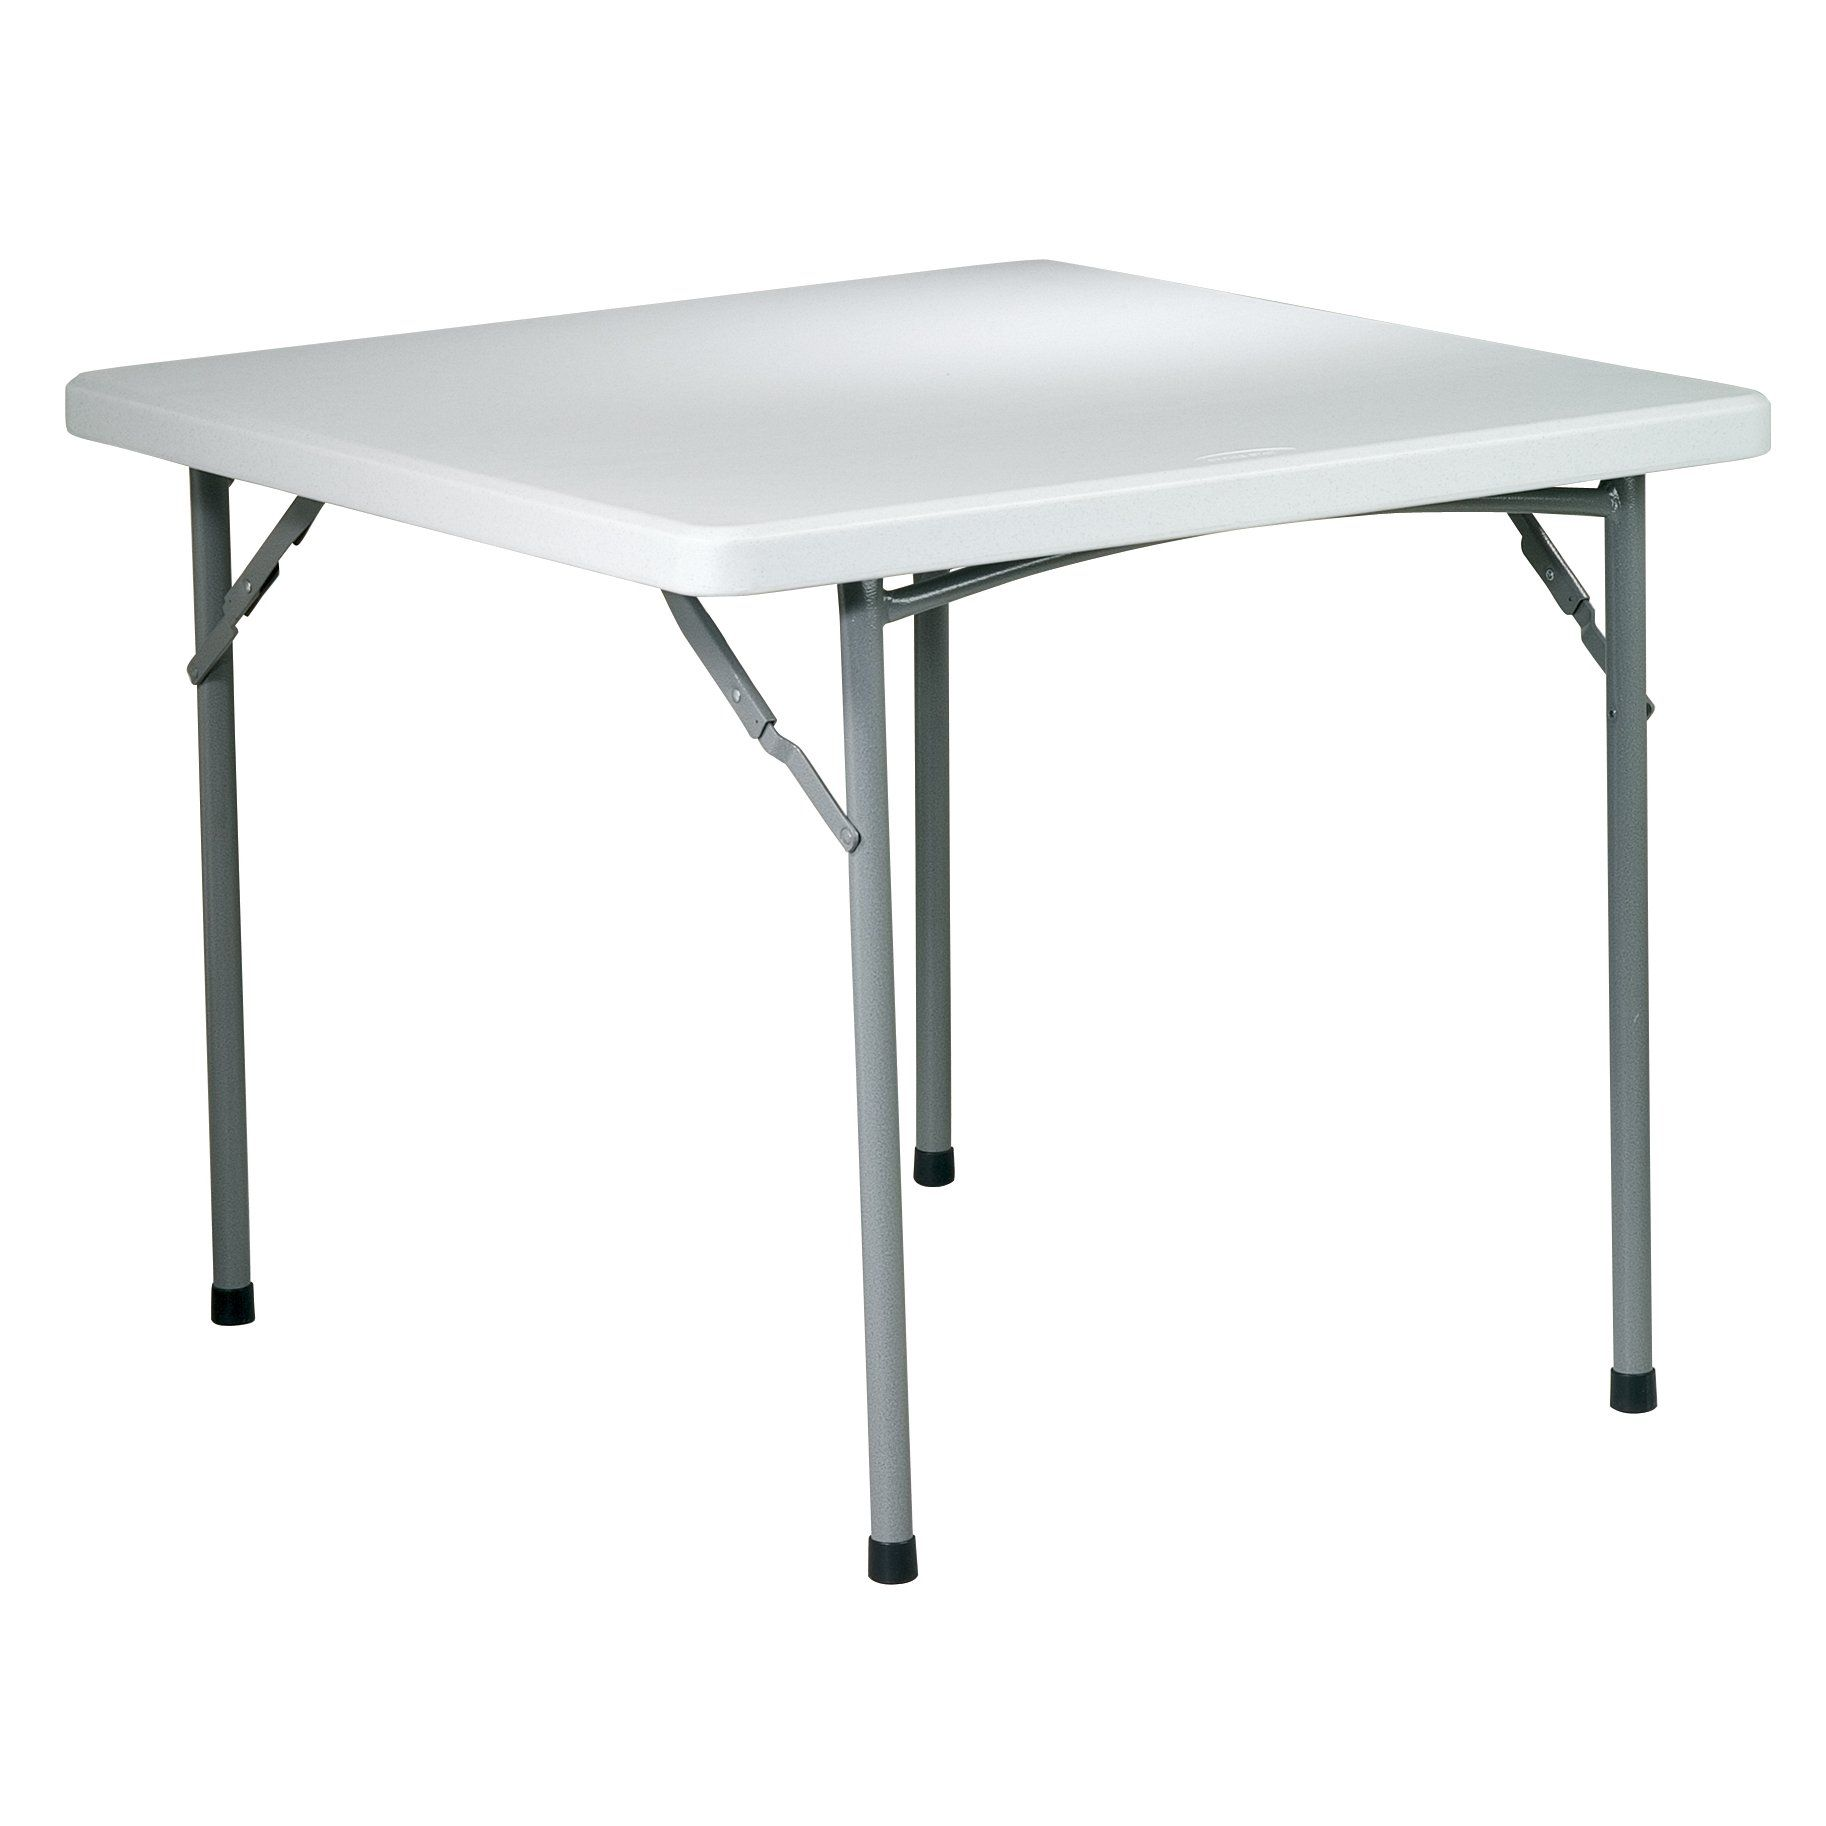 Amazing Merax 36 Square Folding Table